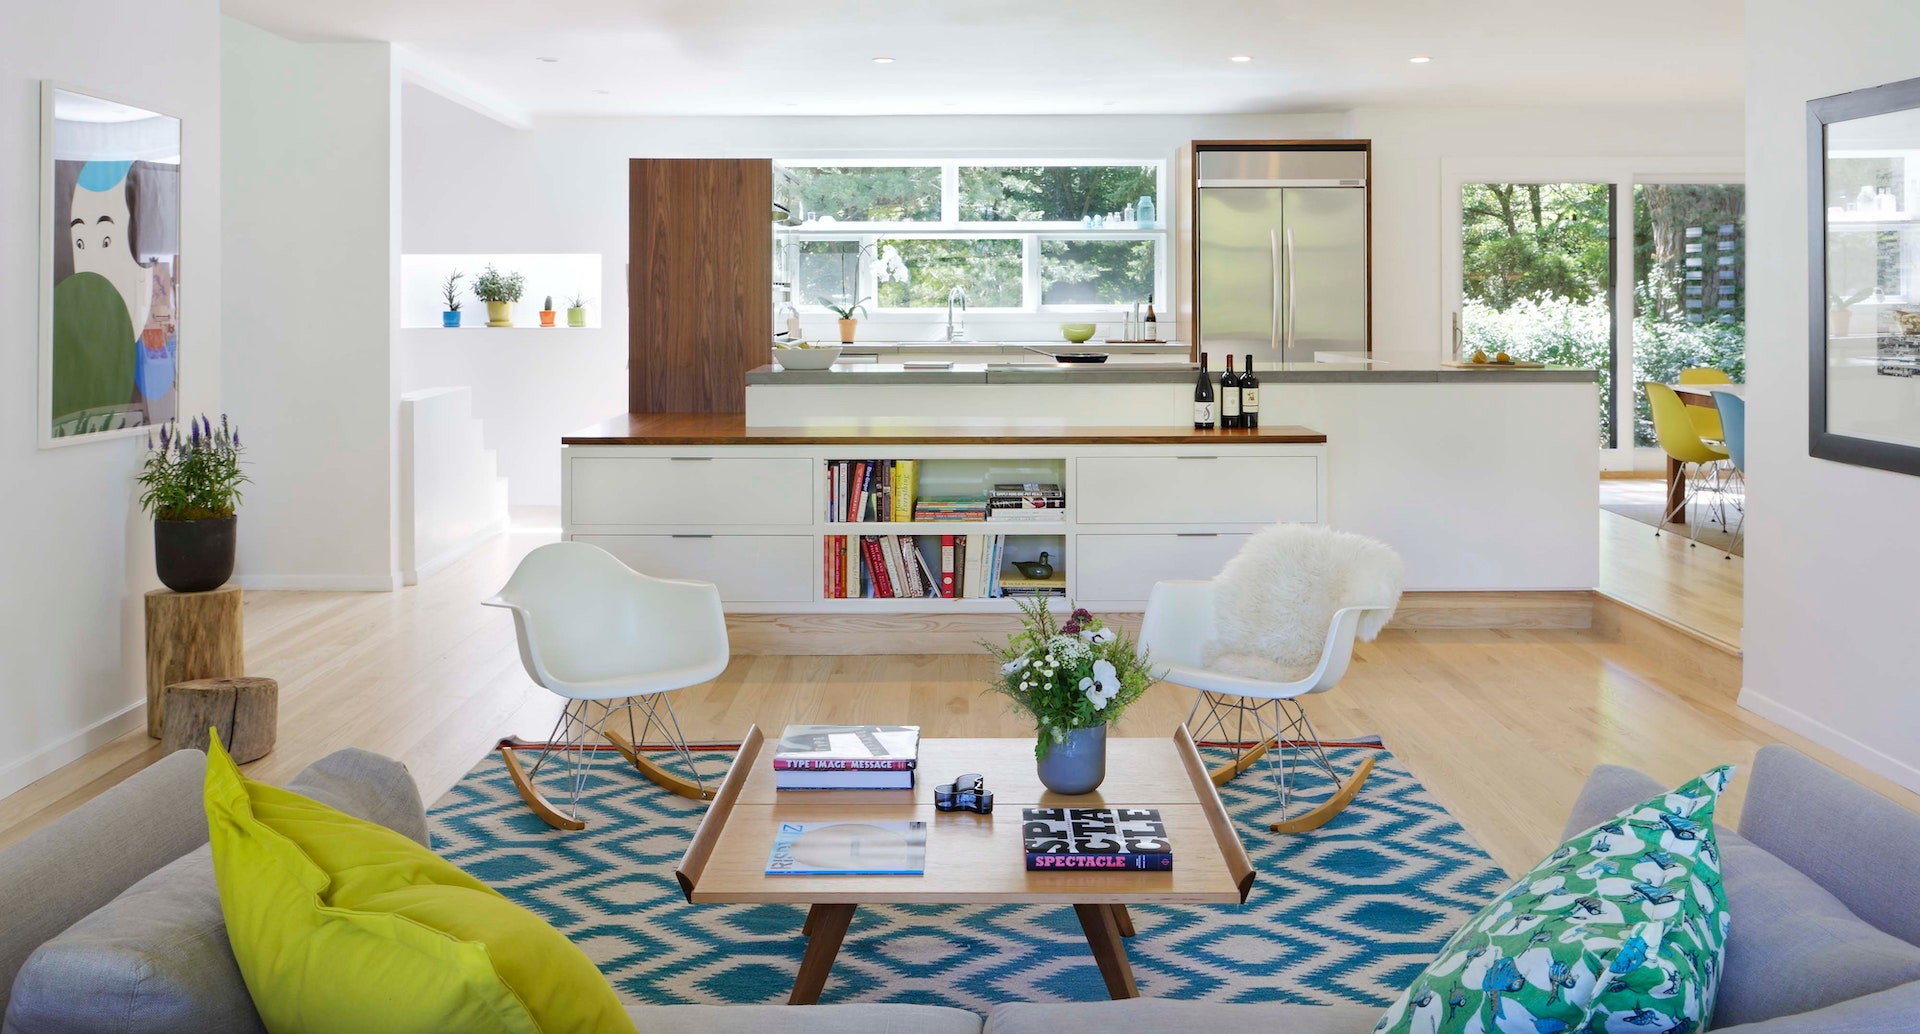 A modern Scandinavian style of wooden and white furniture accents in a living room of a terrace house